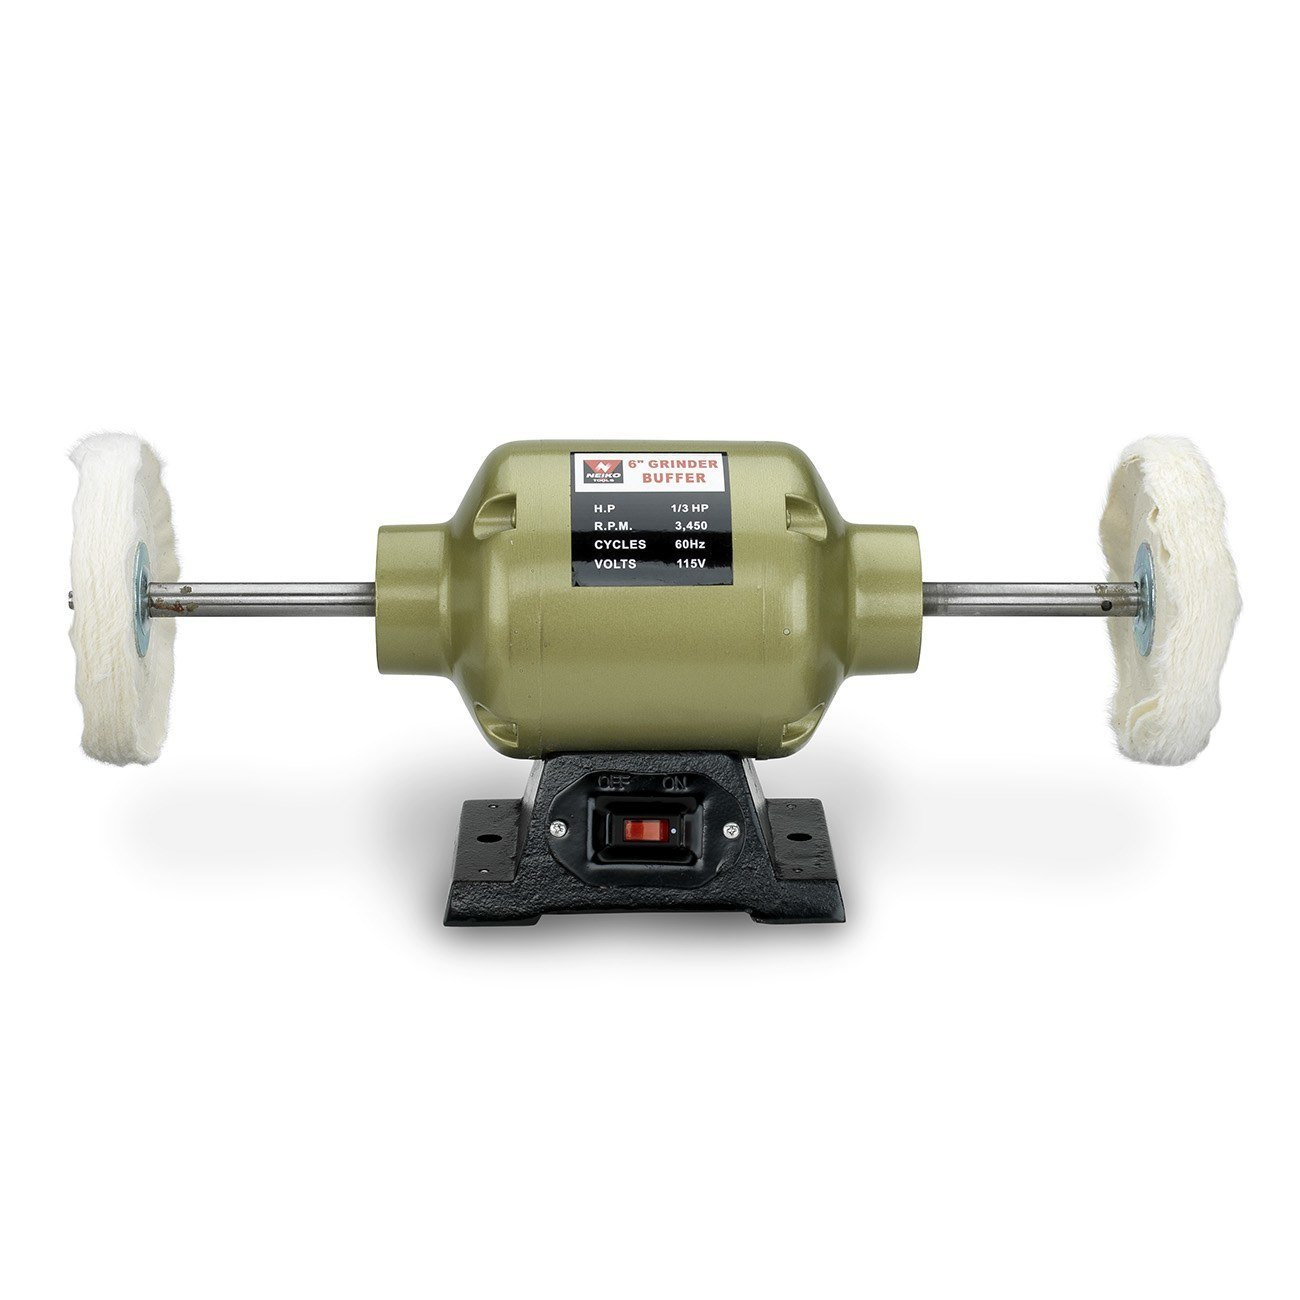 Neiko 10205A 6'' Benchtop Grinder and Buffer, 1/2 HP, Long Shaft with 2 Buffing Wheels, 3, 450 rpm, Clear